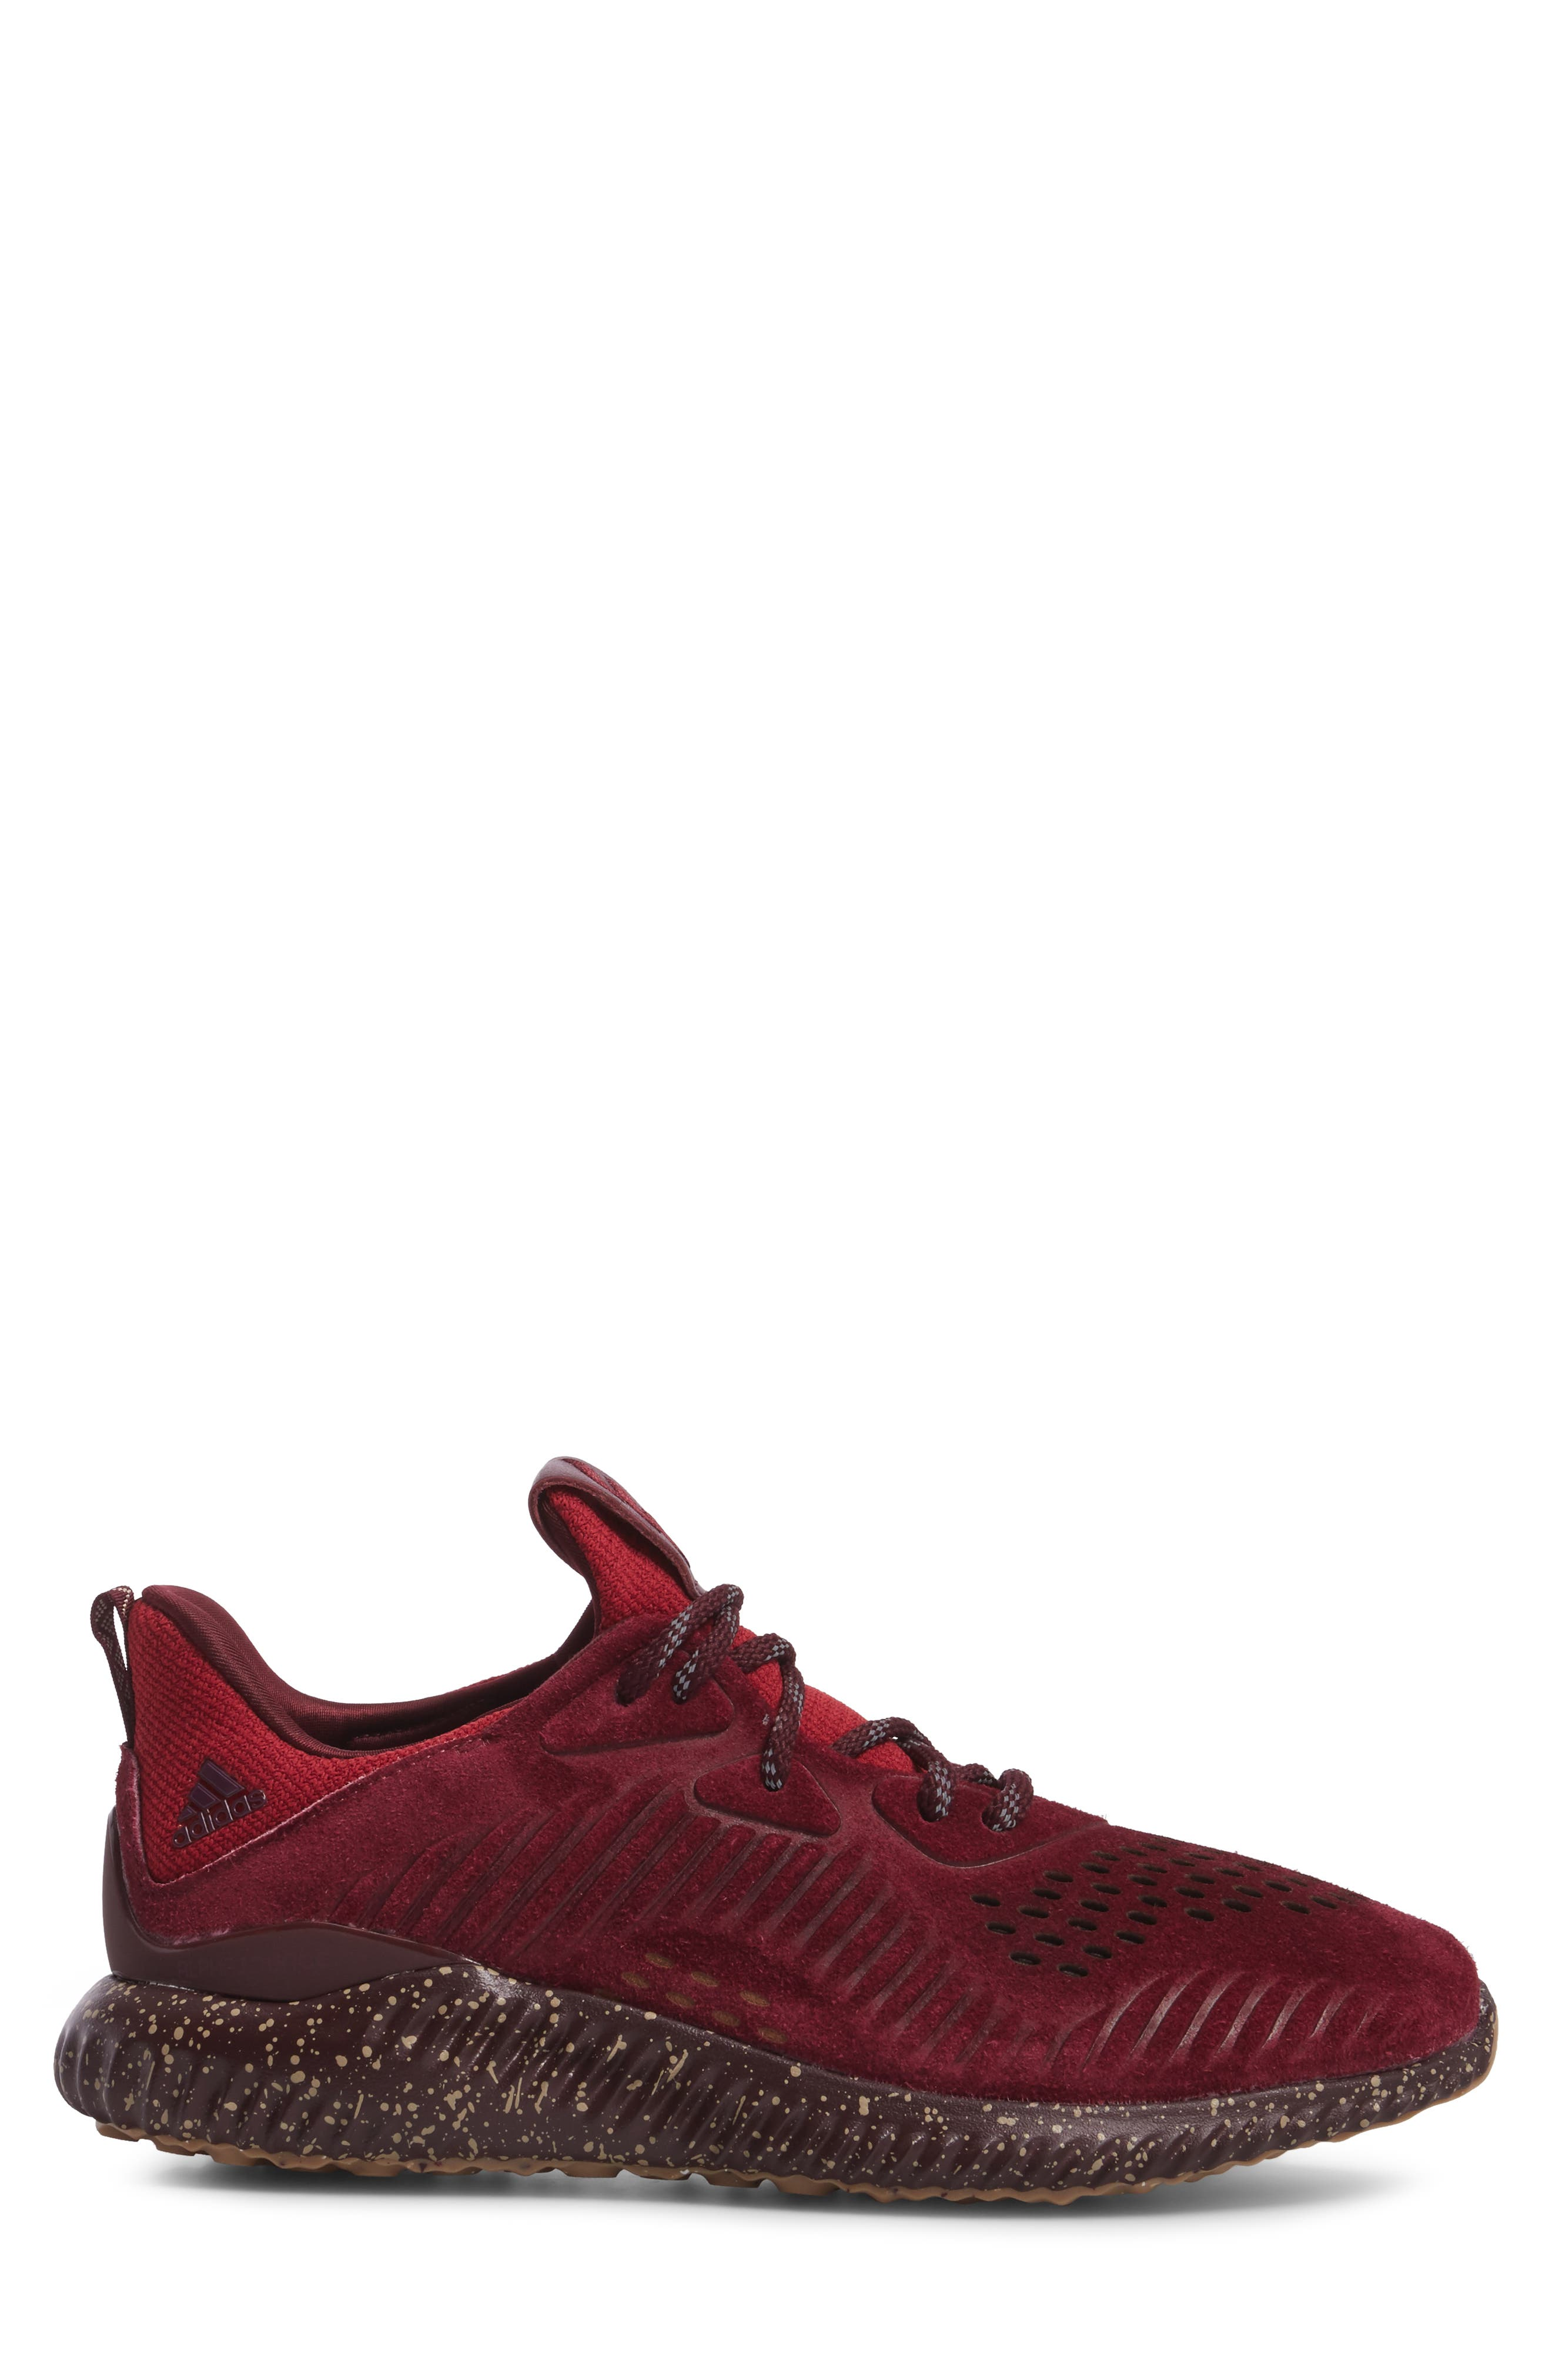 AlphaBounce LEA Running Shoe,                             Alternate thumbnail 6, color,